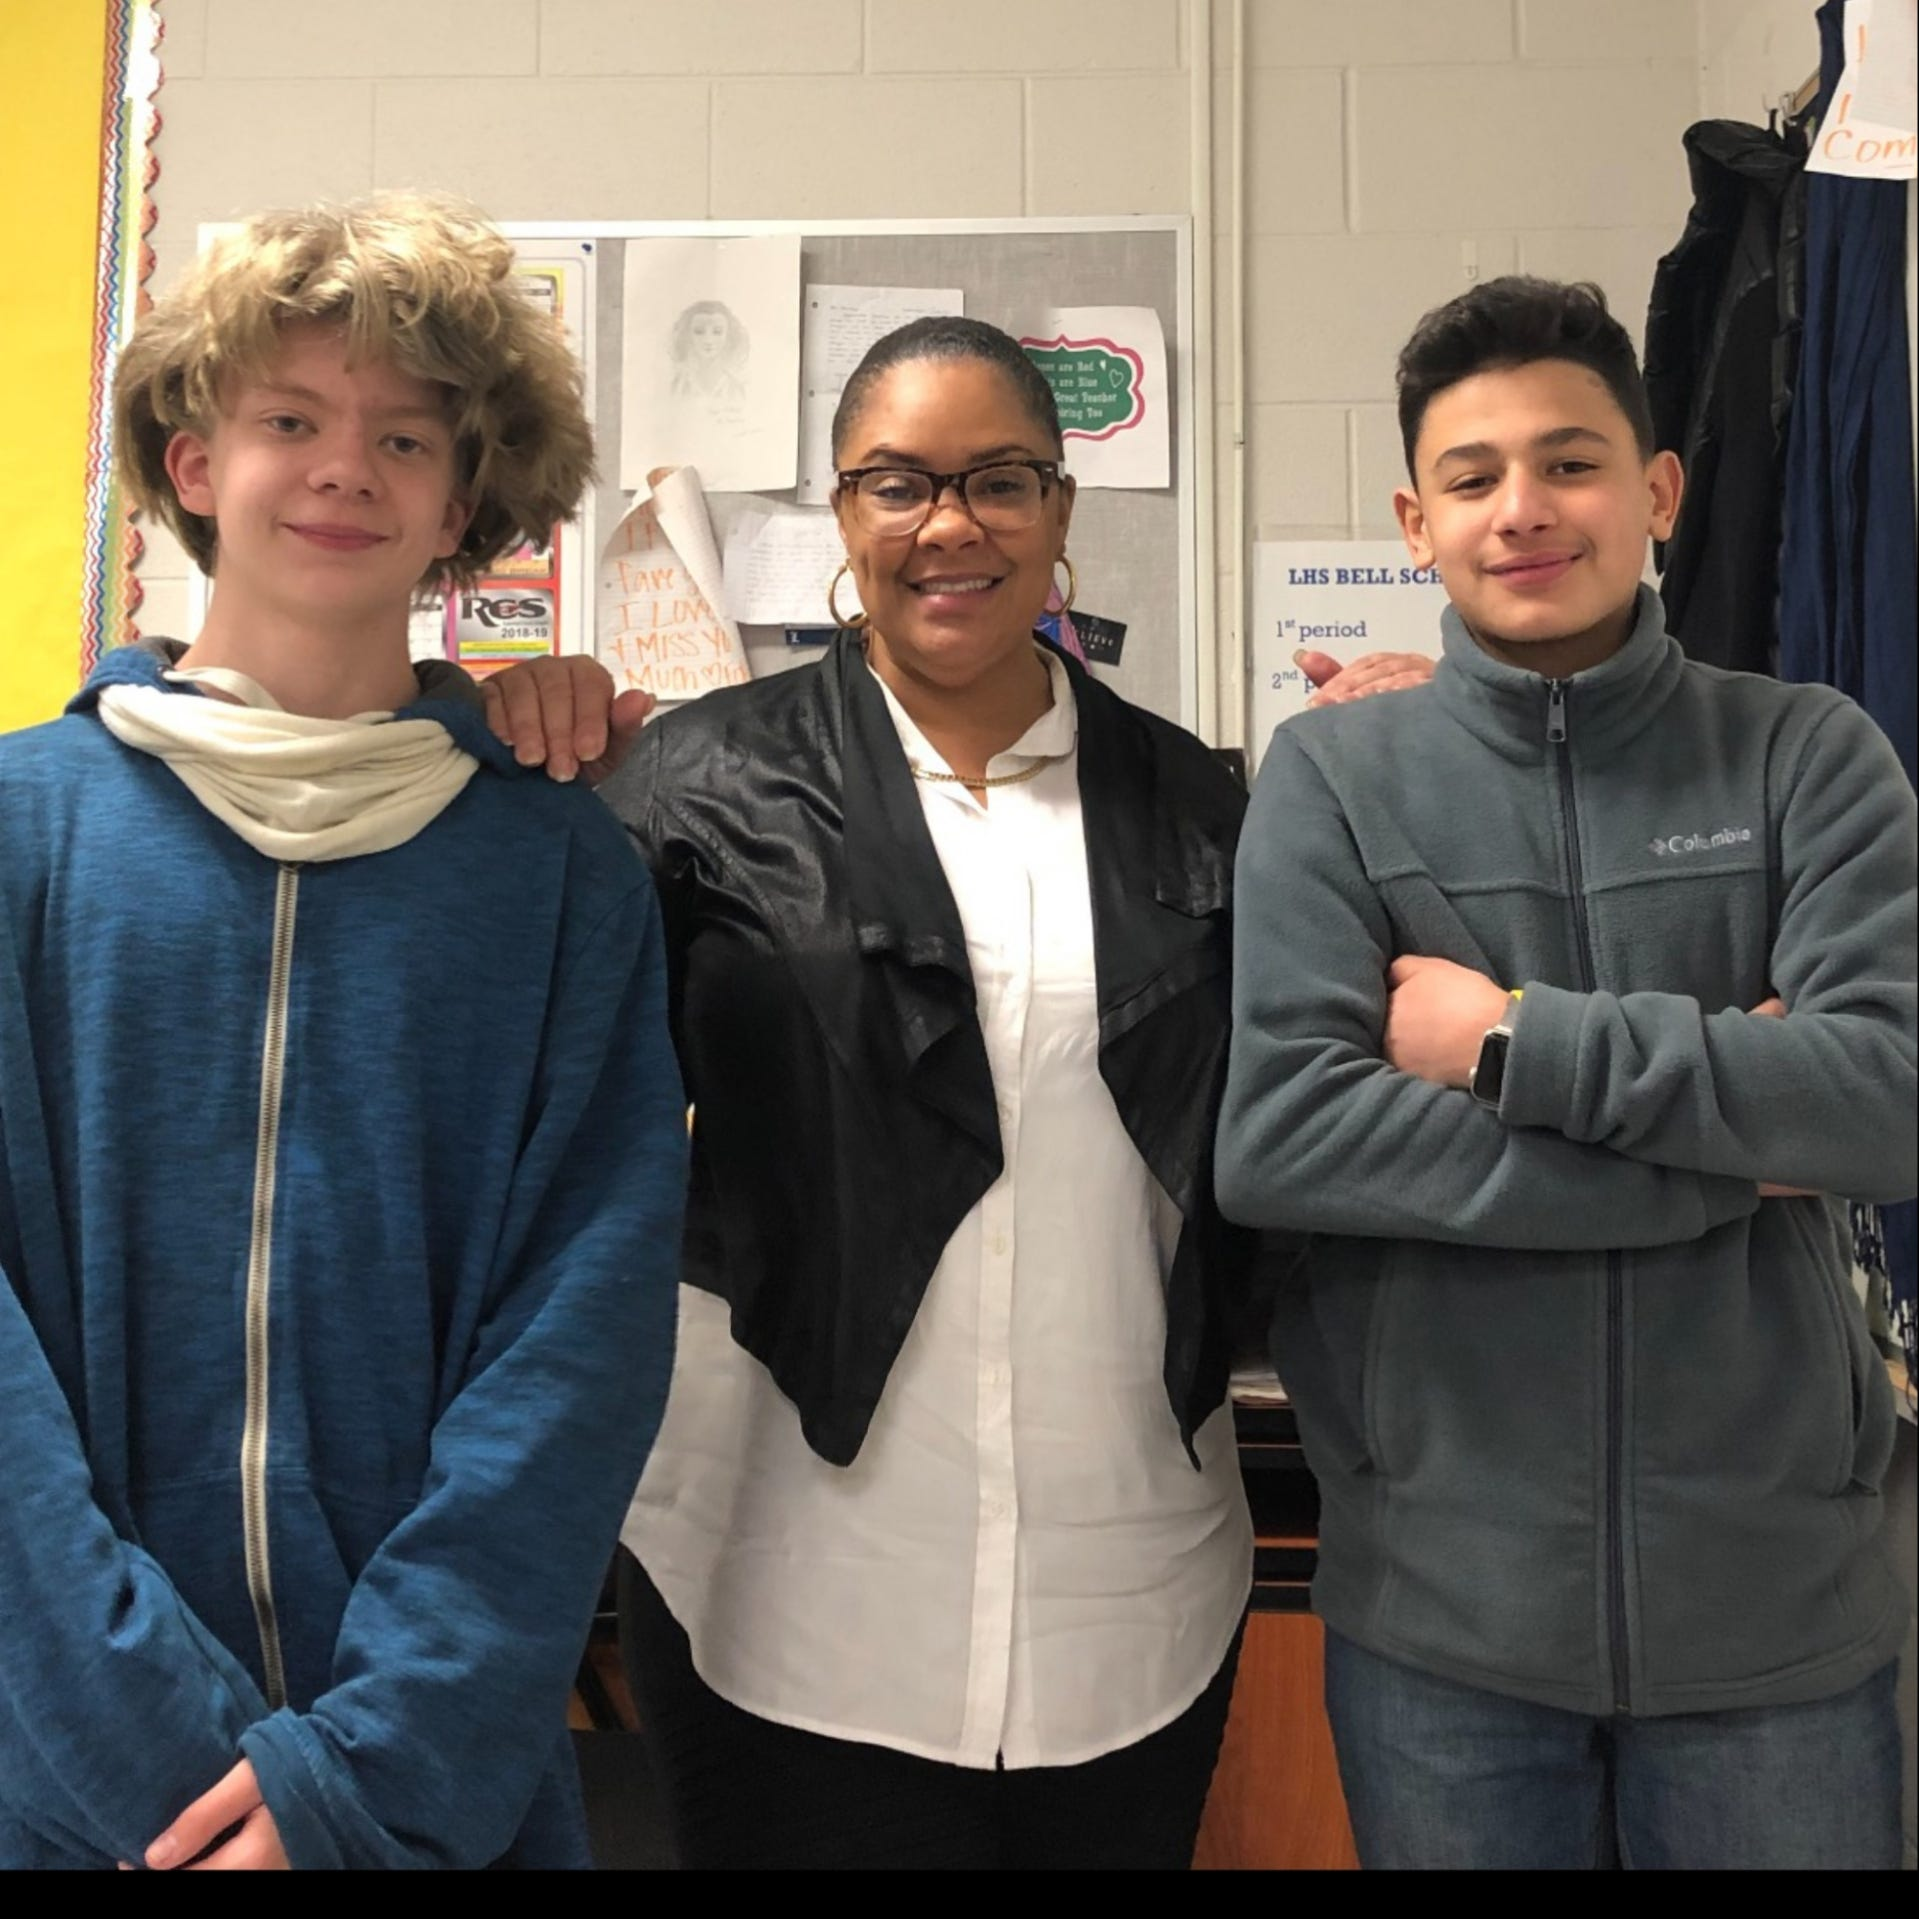 Video of La Vergne High students surprising classmate with gifts goes viral